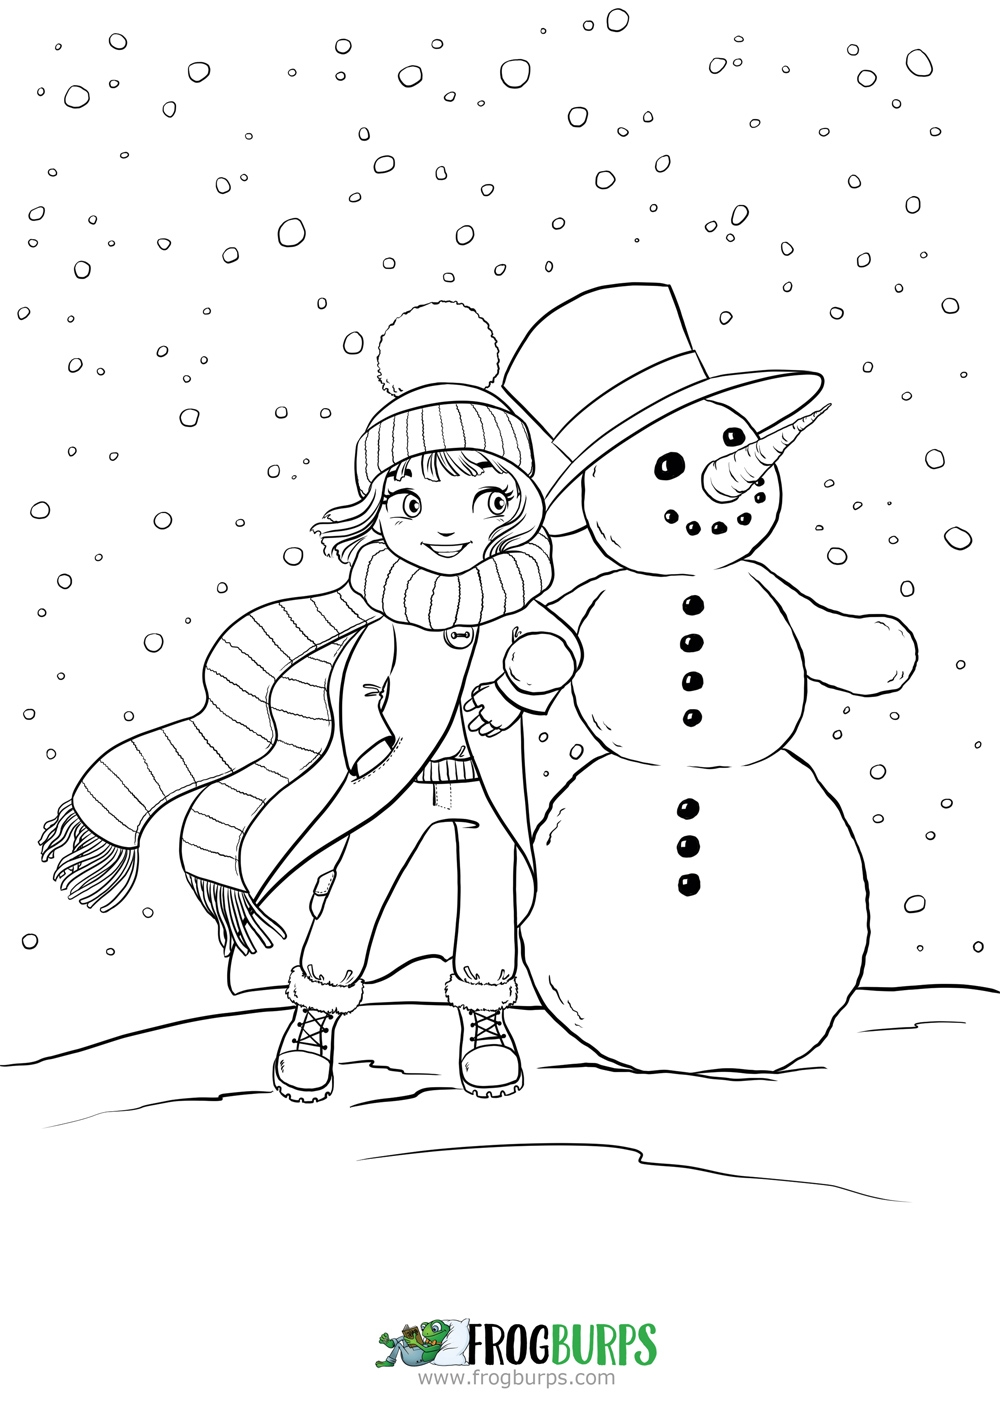 Snowfriends | Coloring Page